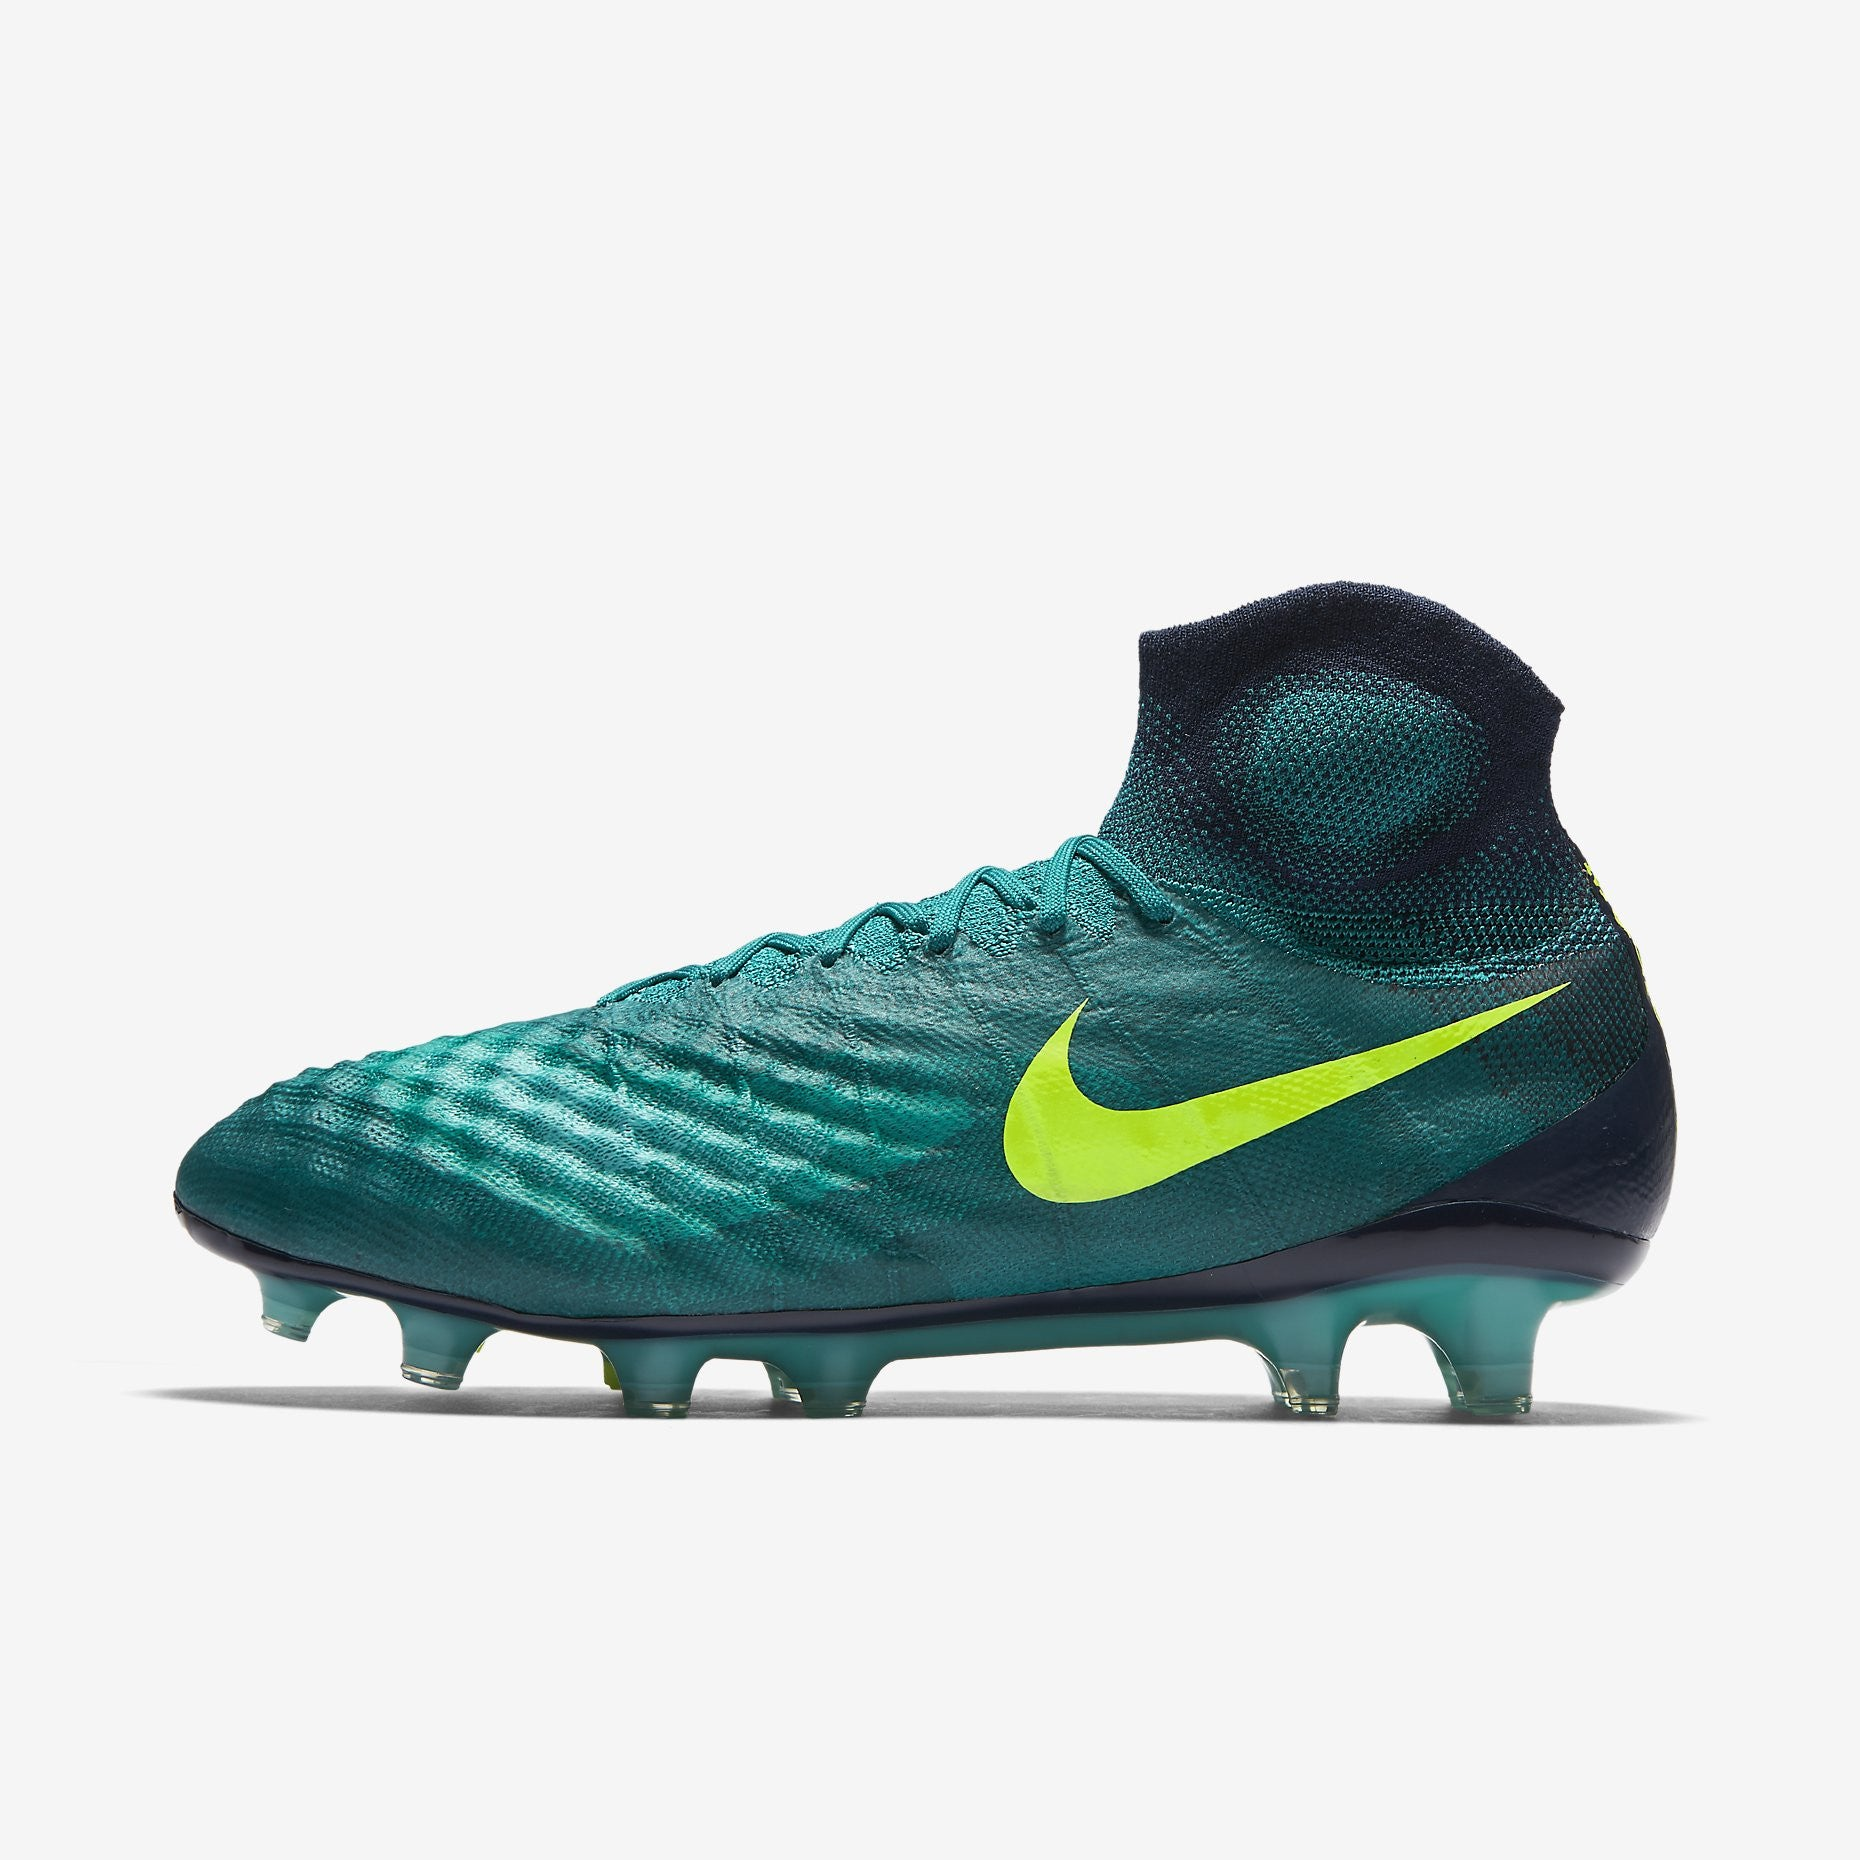 reputable site 49074 01e47 Nike - Nike Men s Magista Obra II Firm-Ground Football Boot - La Liga Soccer